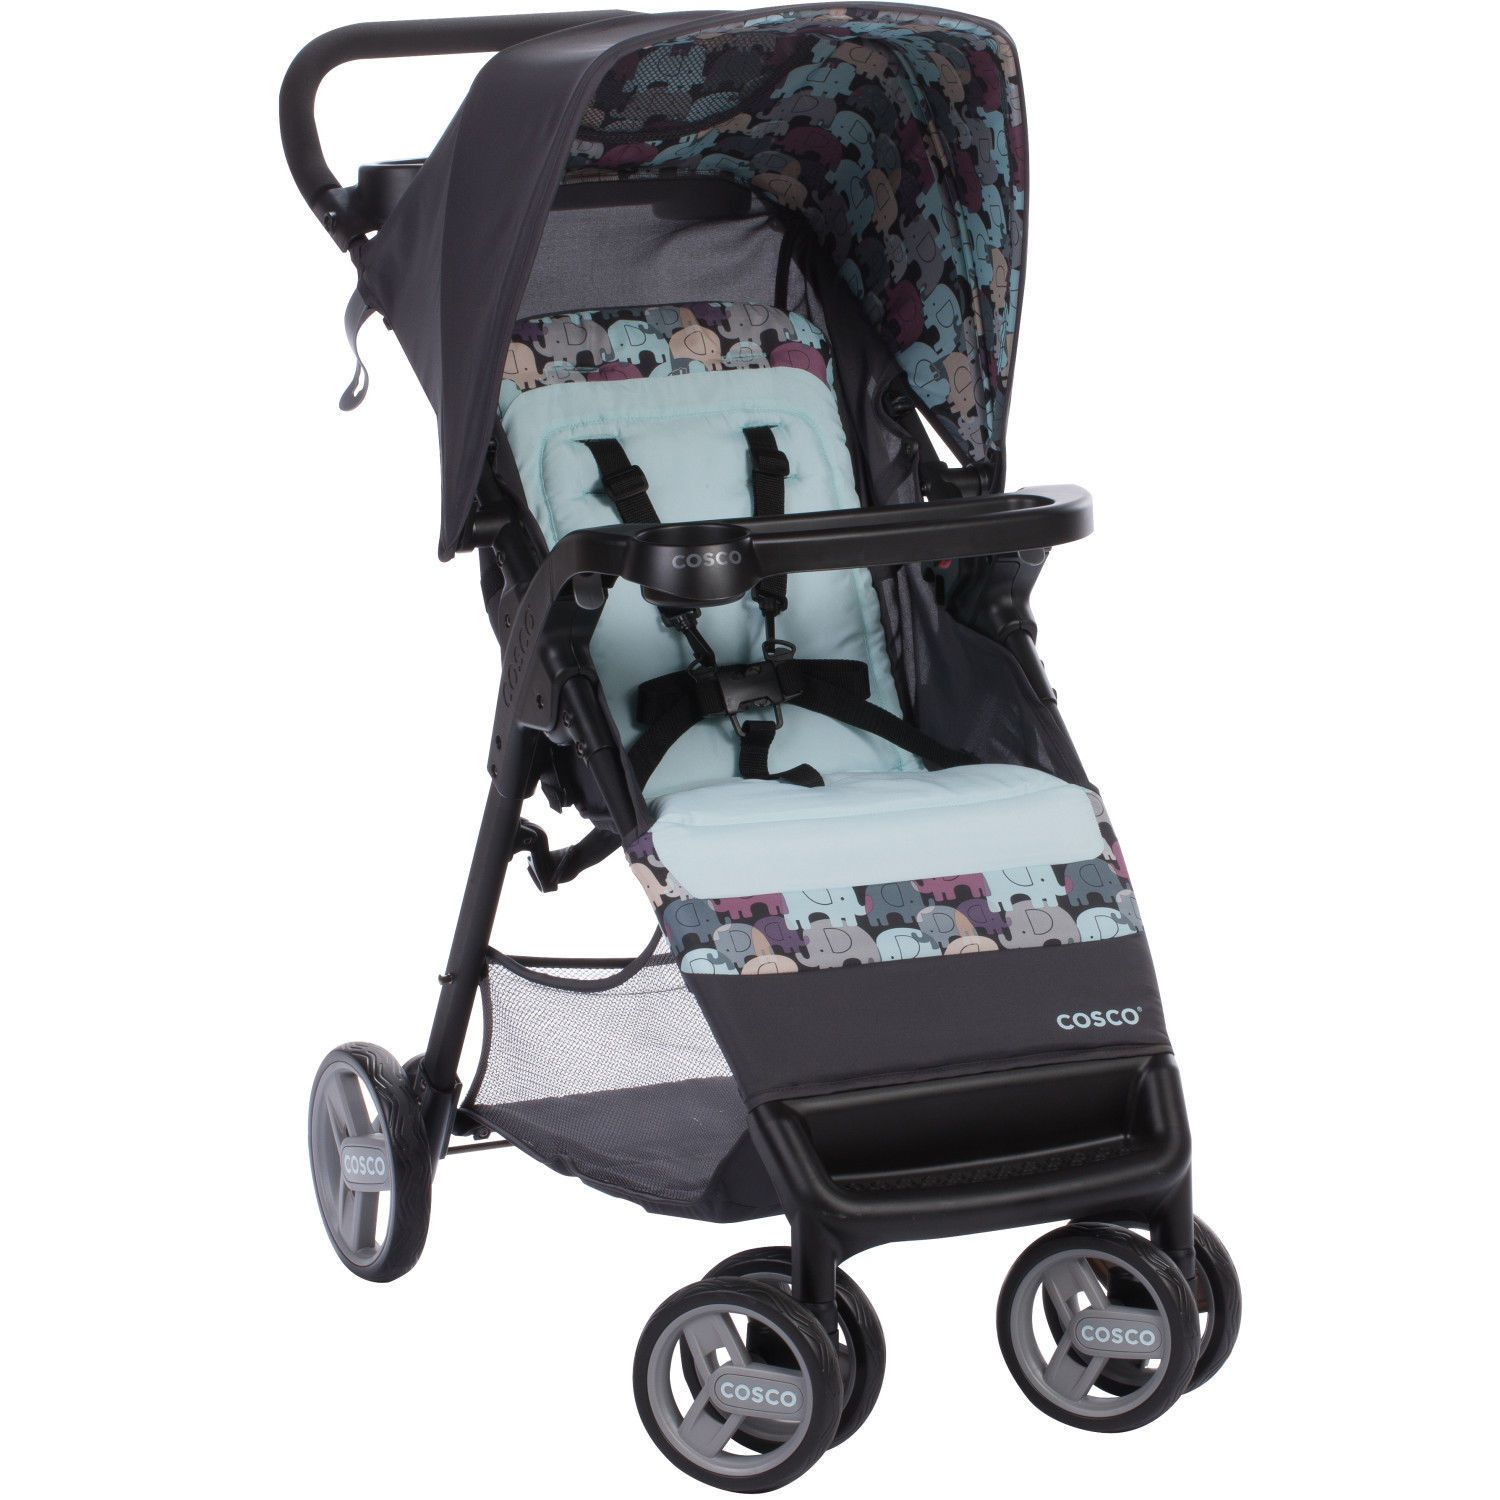 Cosco Simple Fold Stroller (With images) Stroller, Best